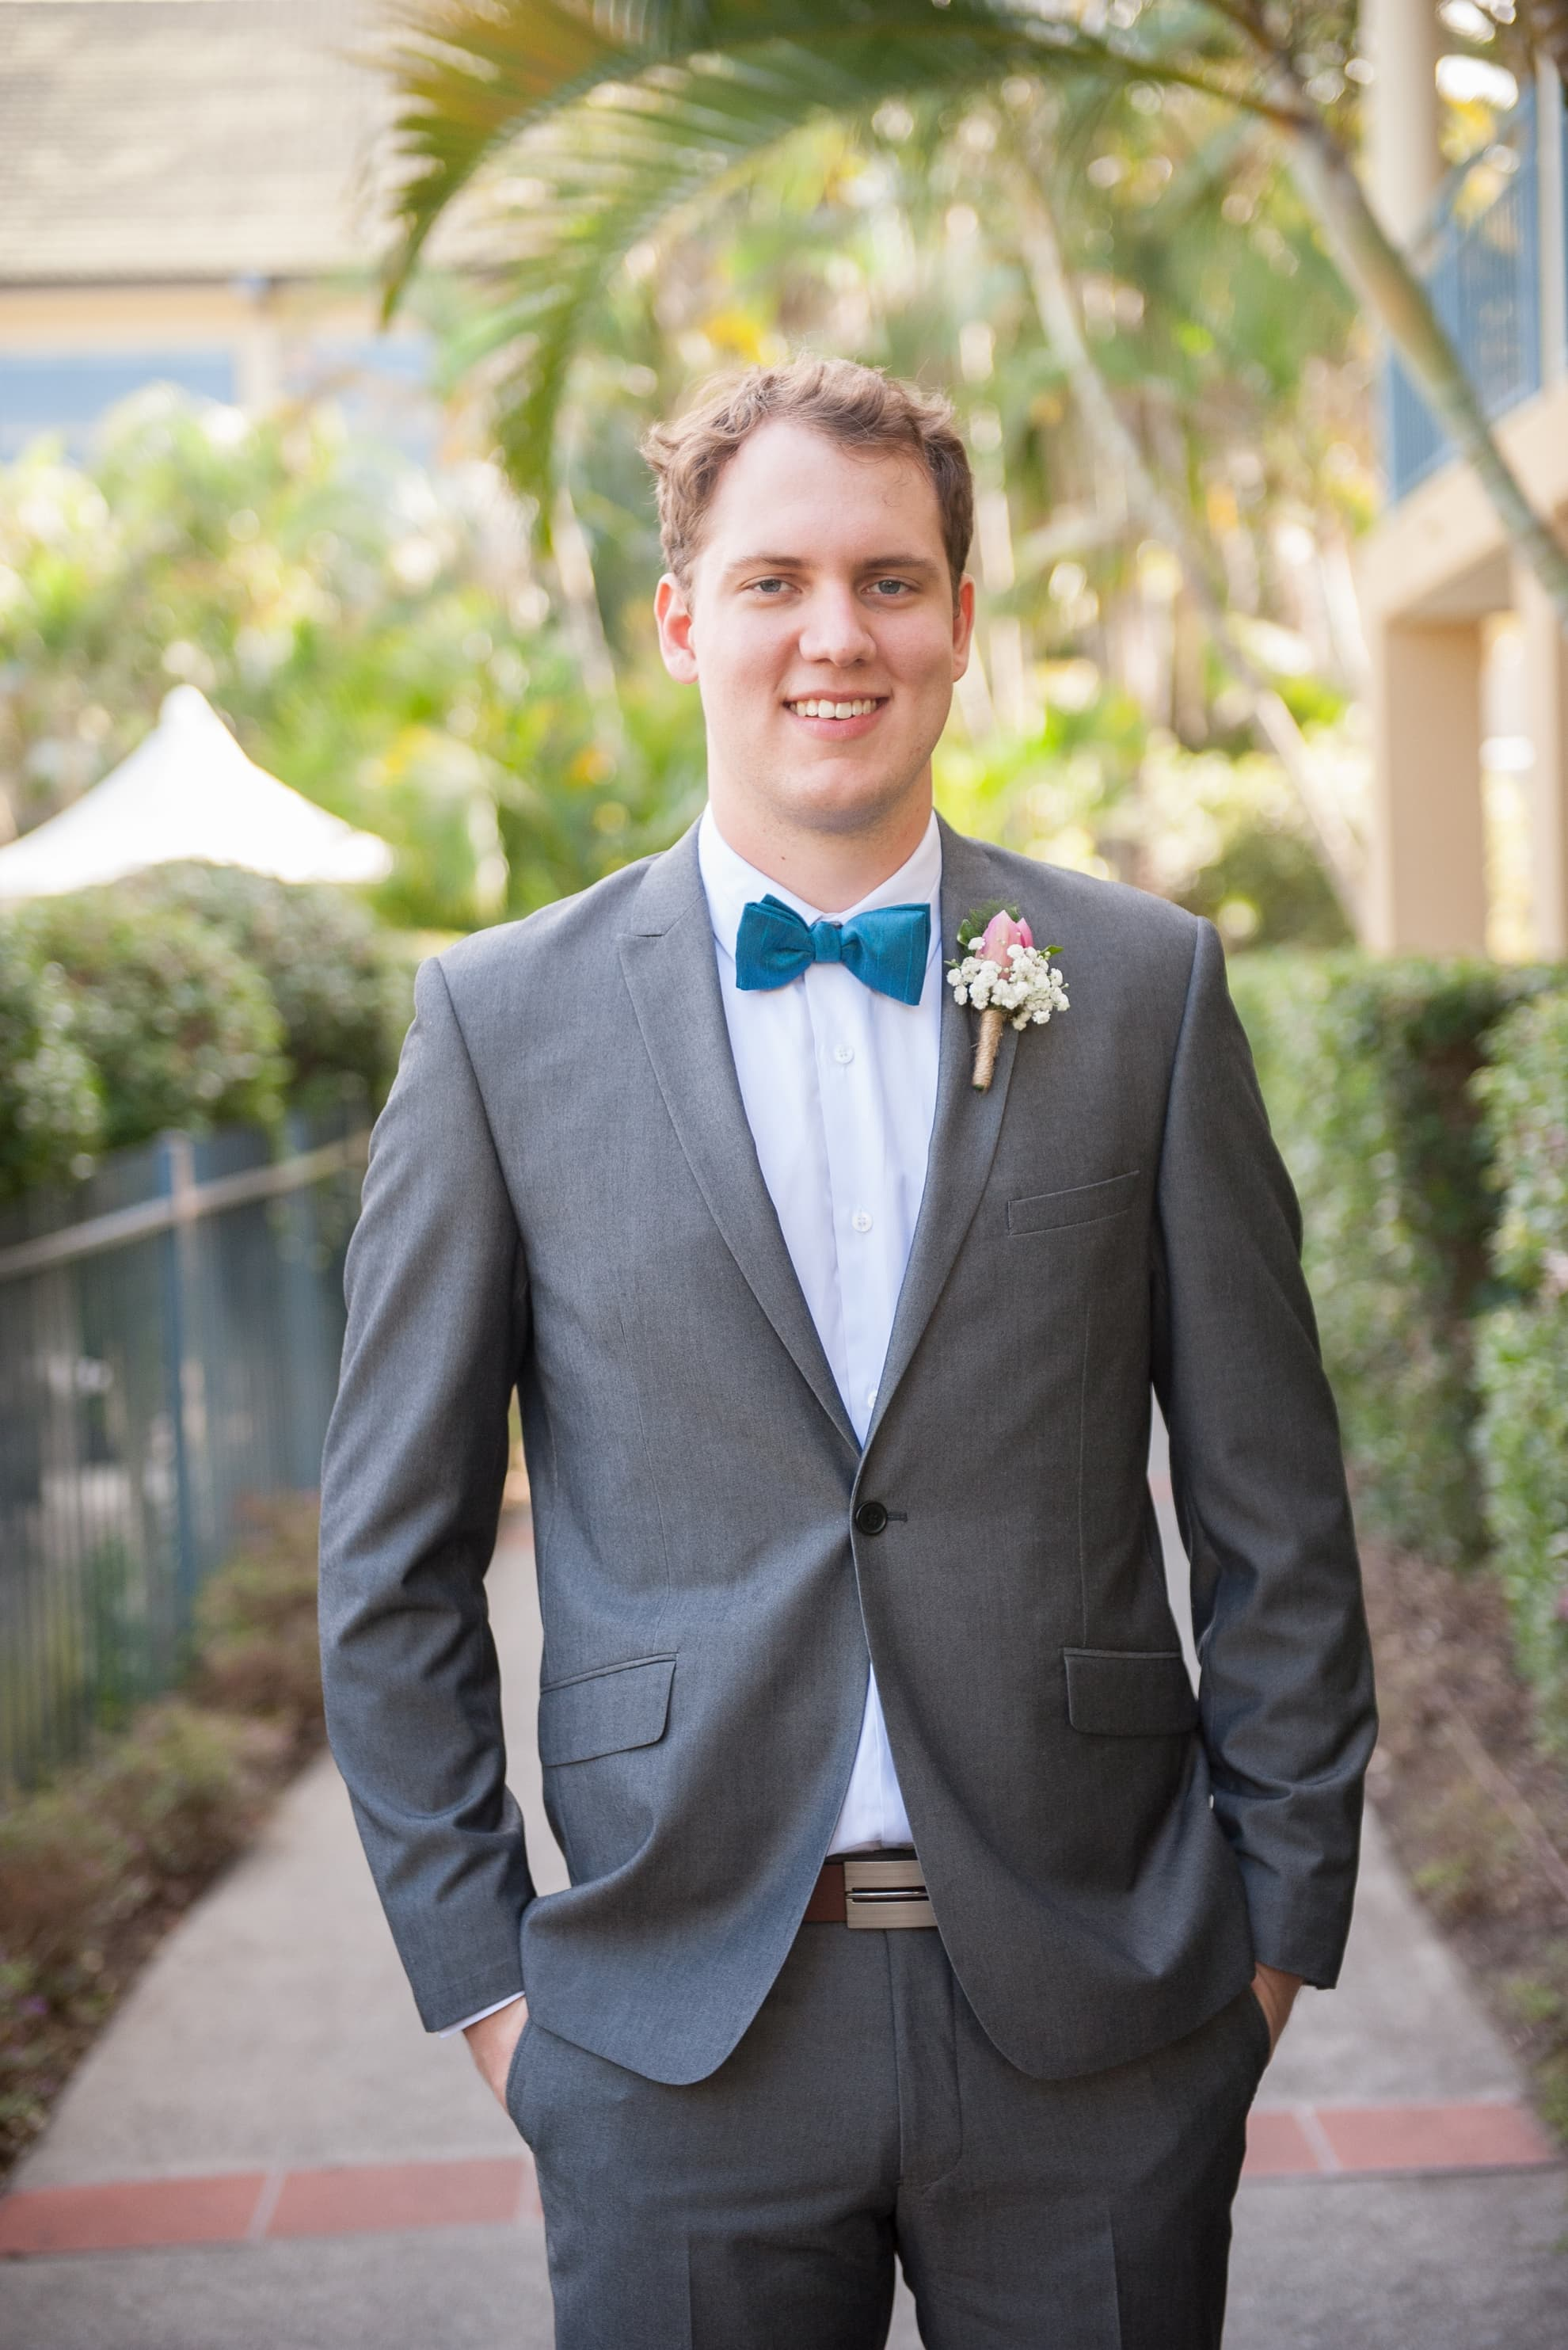 Groomsman-laughing-and-smiling-for-the-camera